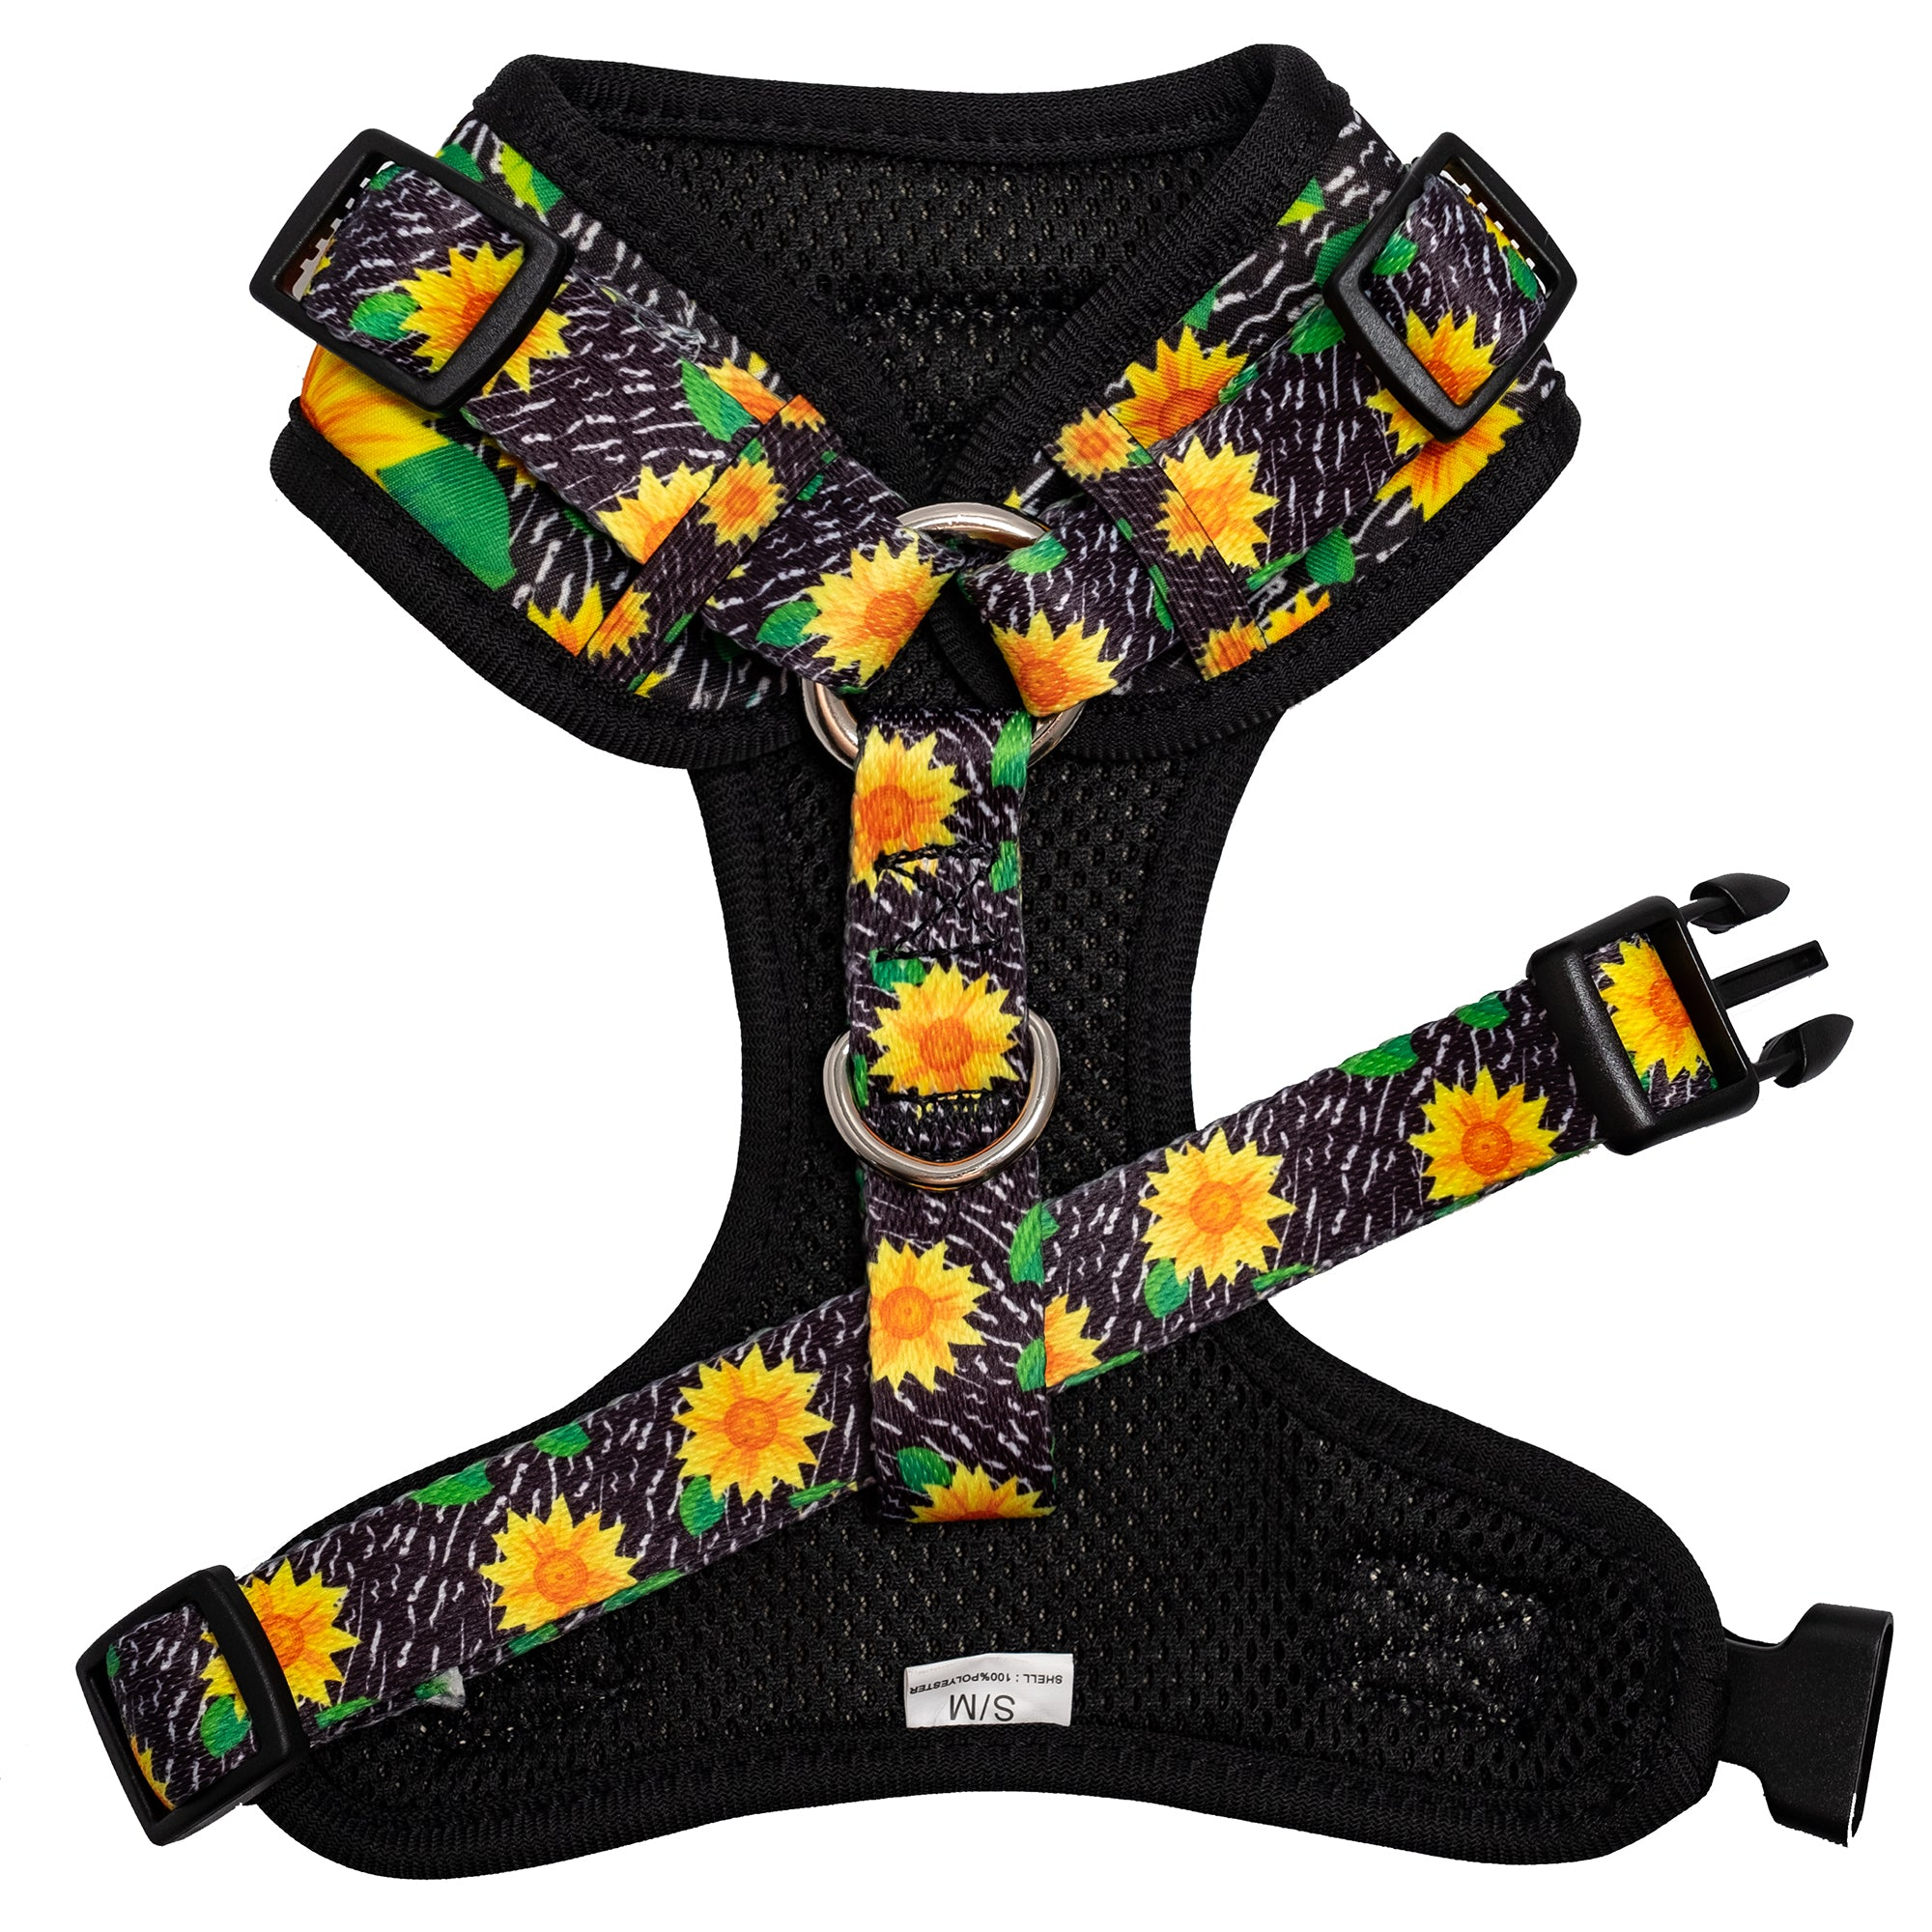 adjustable dog harness in sunflower print